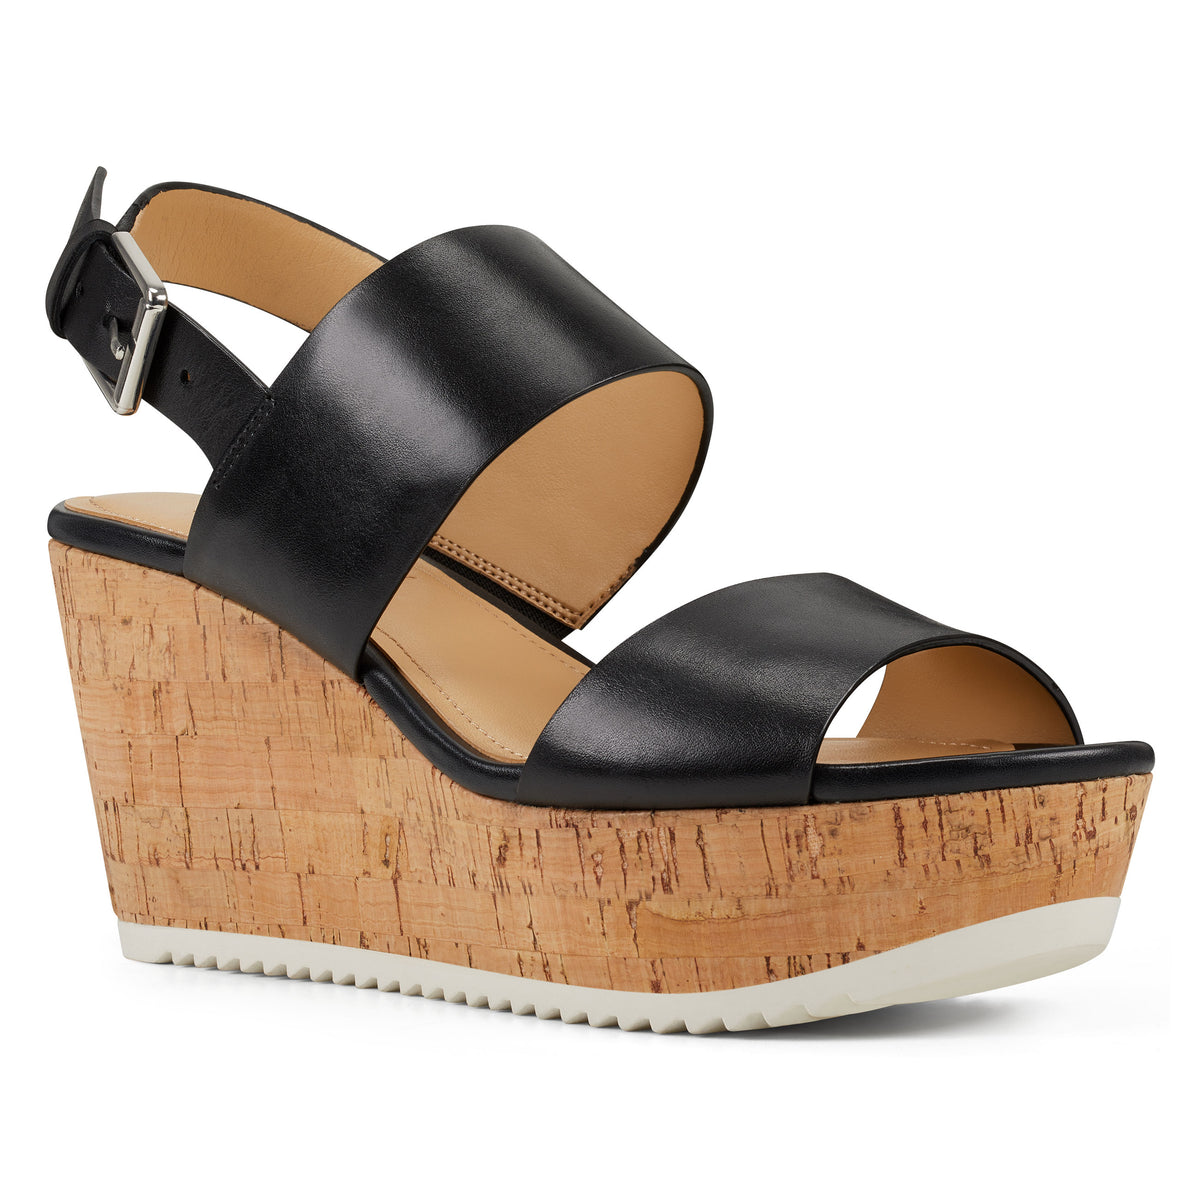 dera-platform-wedge-sandals-in-black-leather